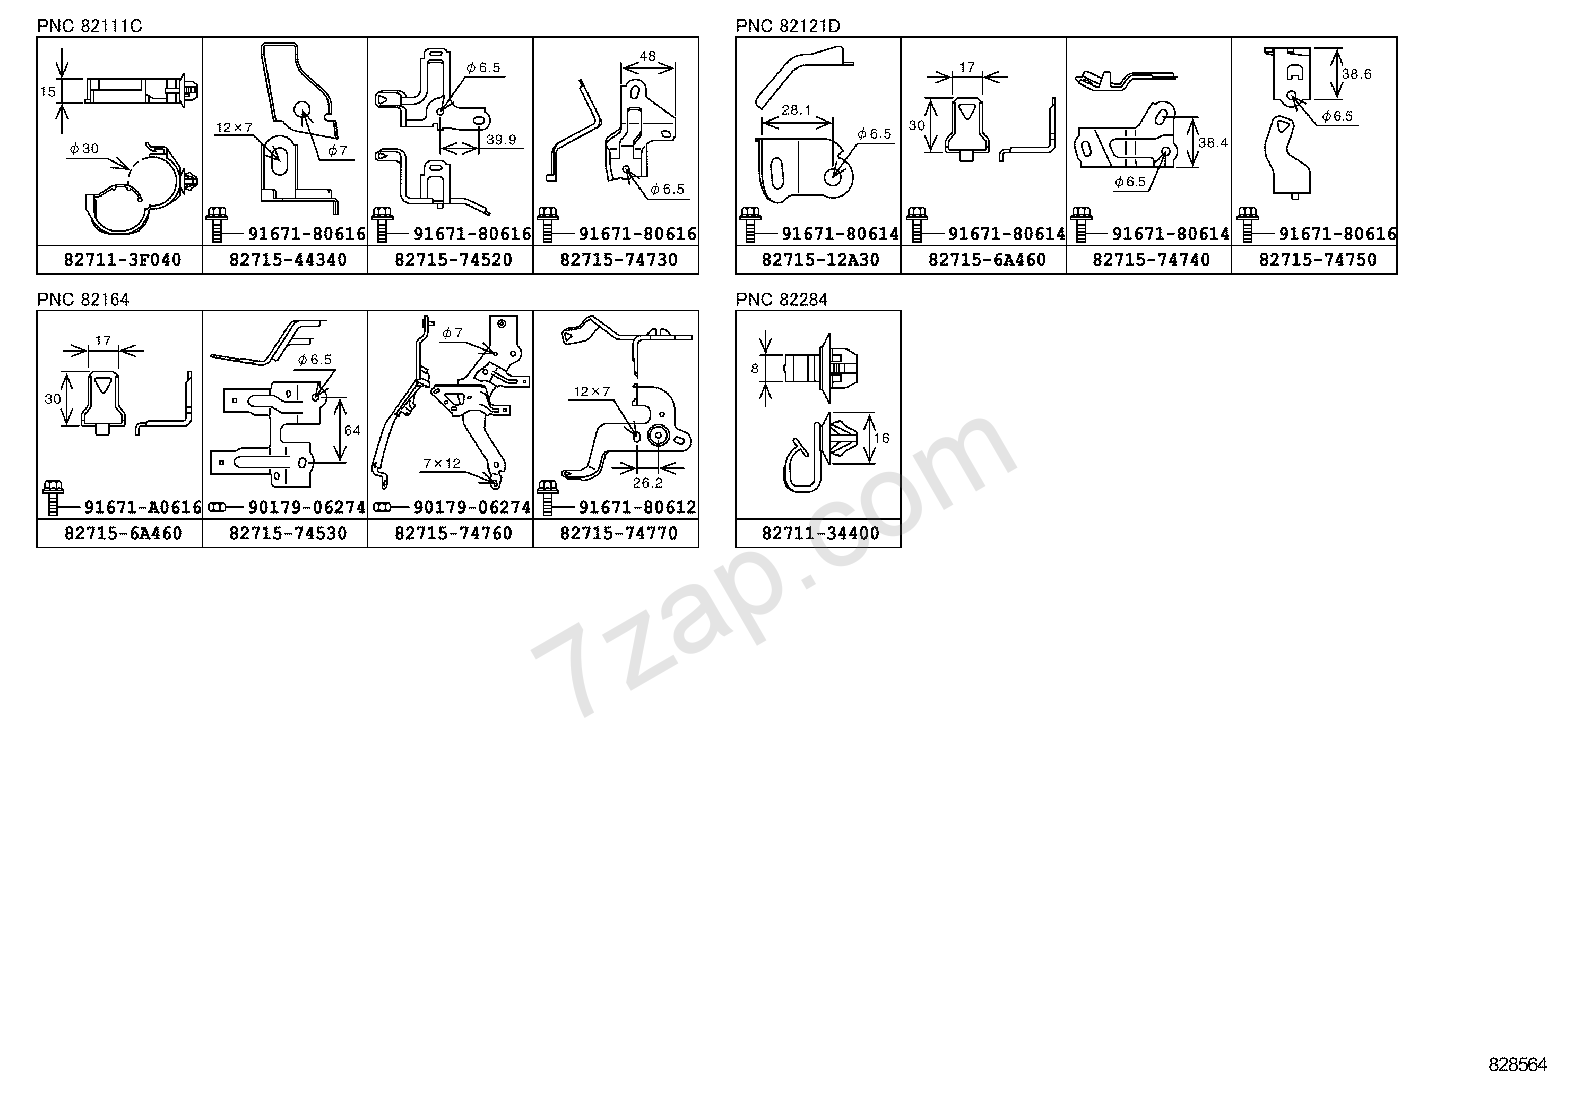 Wiring Diagram Toyota Iq on toyota alternator wiring, toyota wiring color codes, toyota flasher relay, toyota ignition diagram, toyota diagrams online, toyota shop manual, toyota cylinder head, toyota maintenance schedule, toyota 22re vacuum line diagram, toyota ecu reset, toyota wiring manual, toyota wiring harness, toyota headlight wiring, toyota electrical diagrams, toyota schematic diagrams, toyota parts diagrams, toyota shock absorber replacement, toyota truck diagrams, toyota cooling system diagram, toyota headlight adjustment,